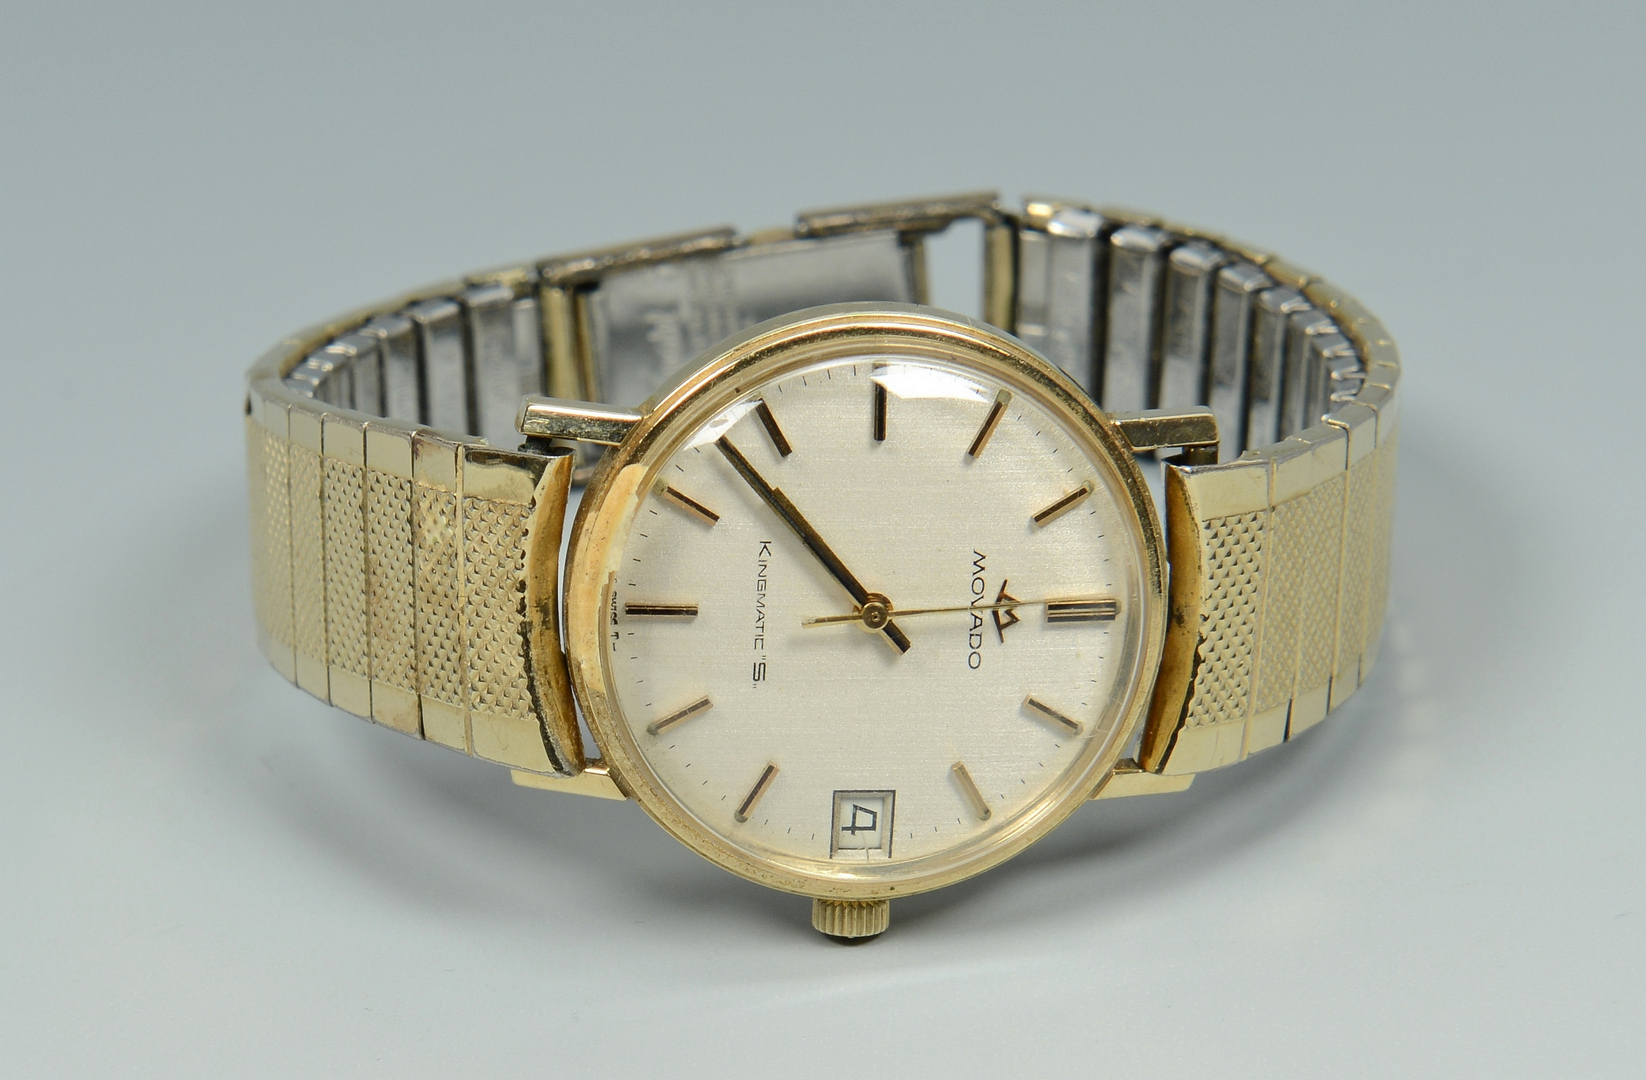 Lot 3088215: Man's 14k Movado Kingmatic SubSea Watch